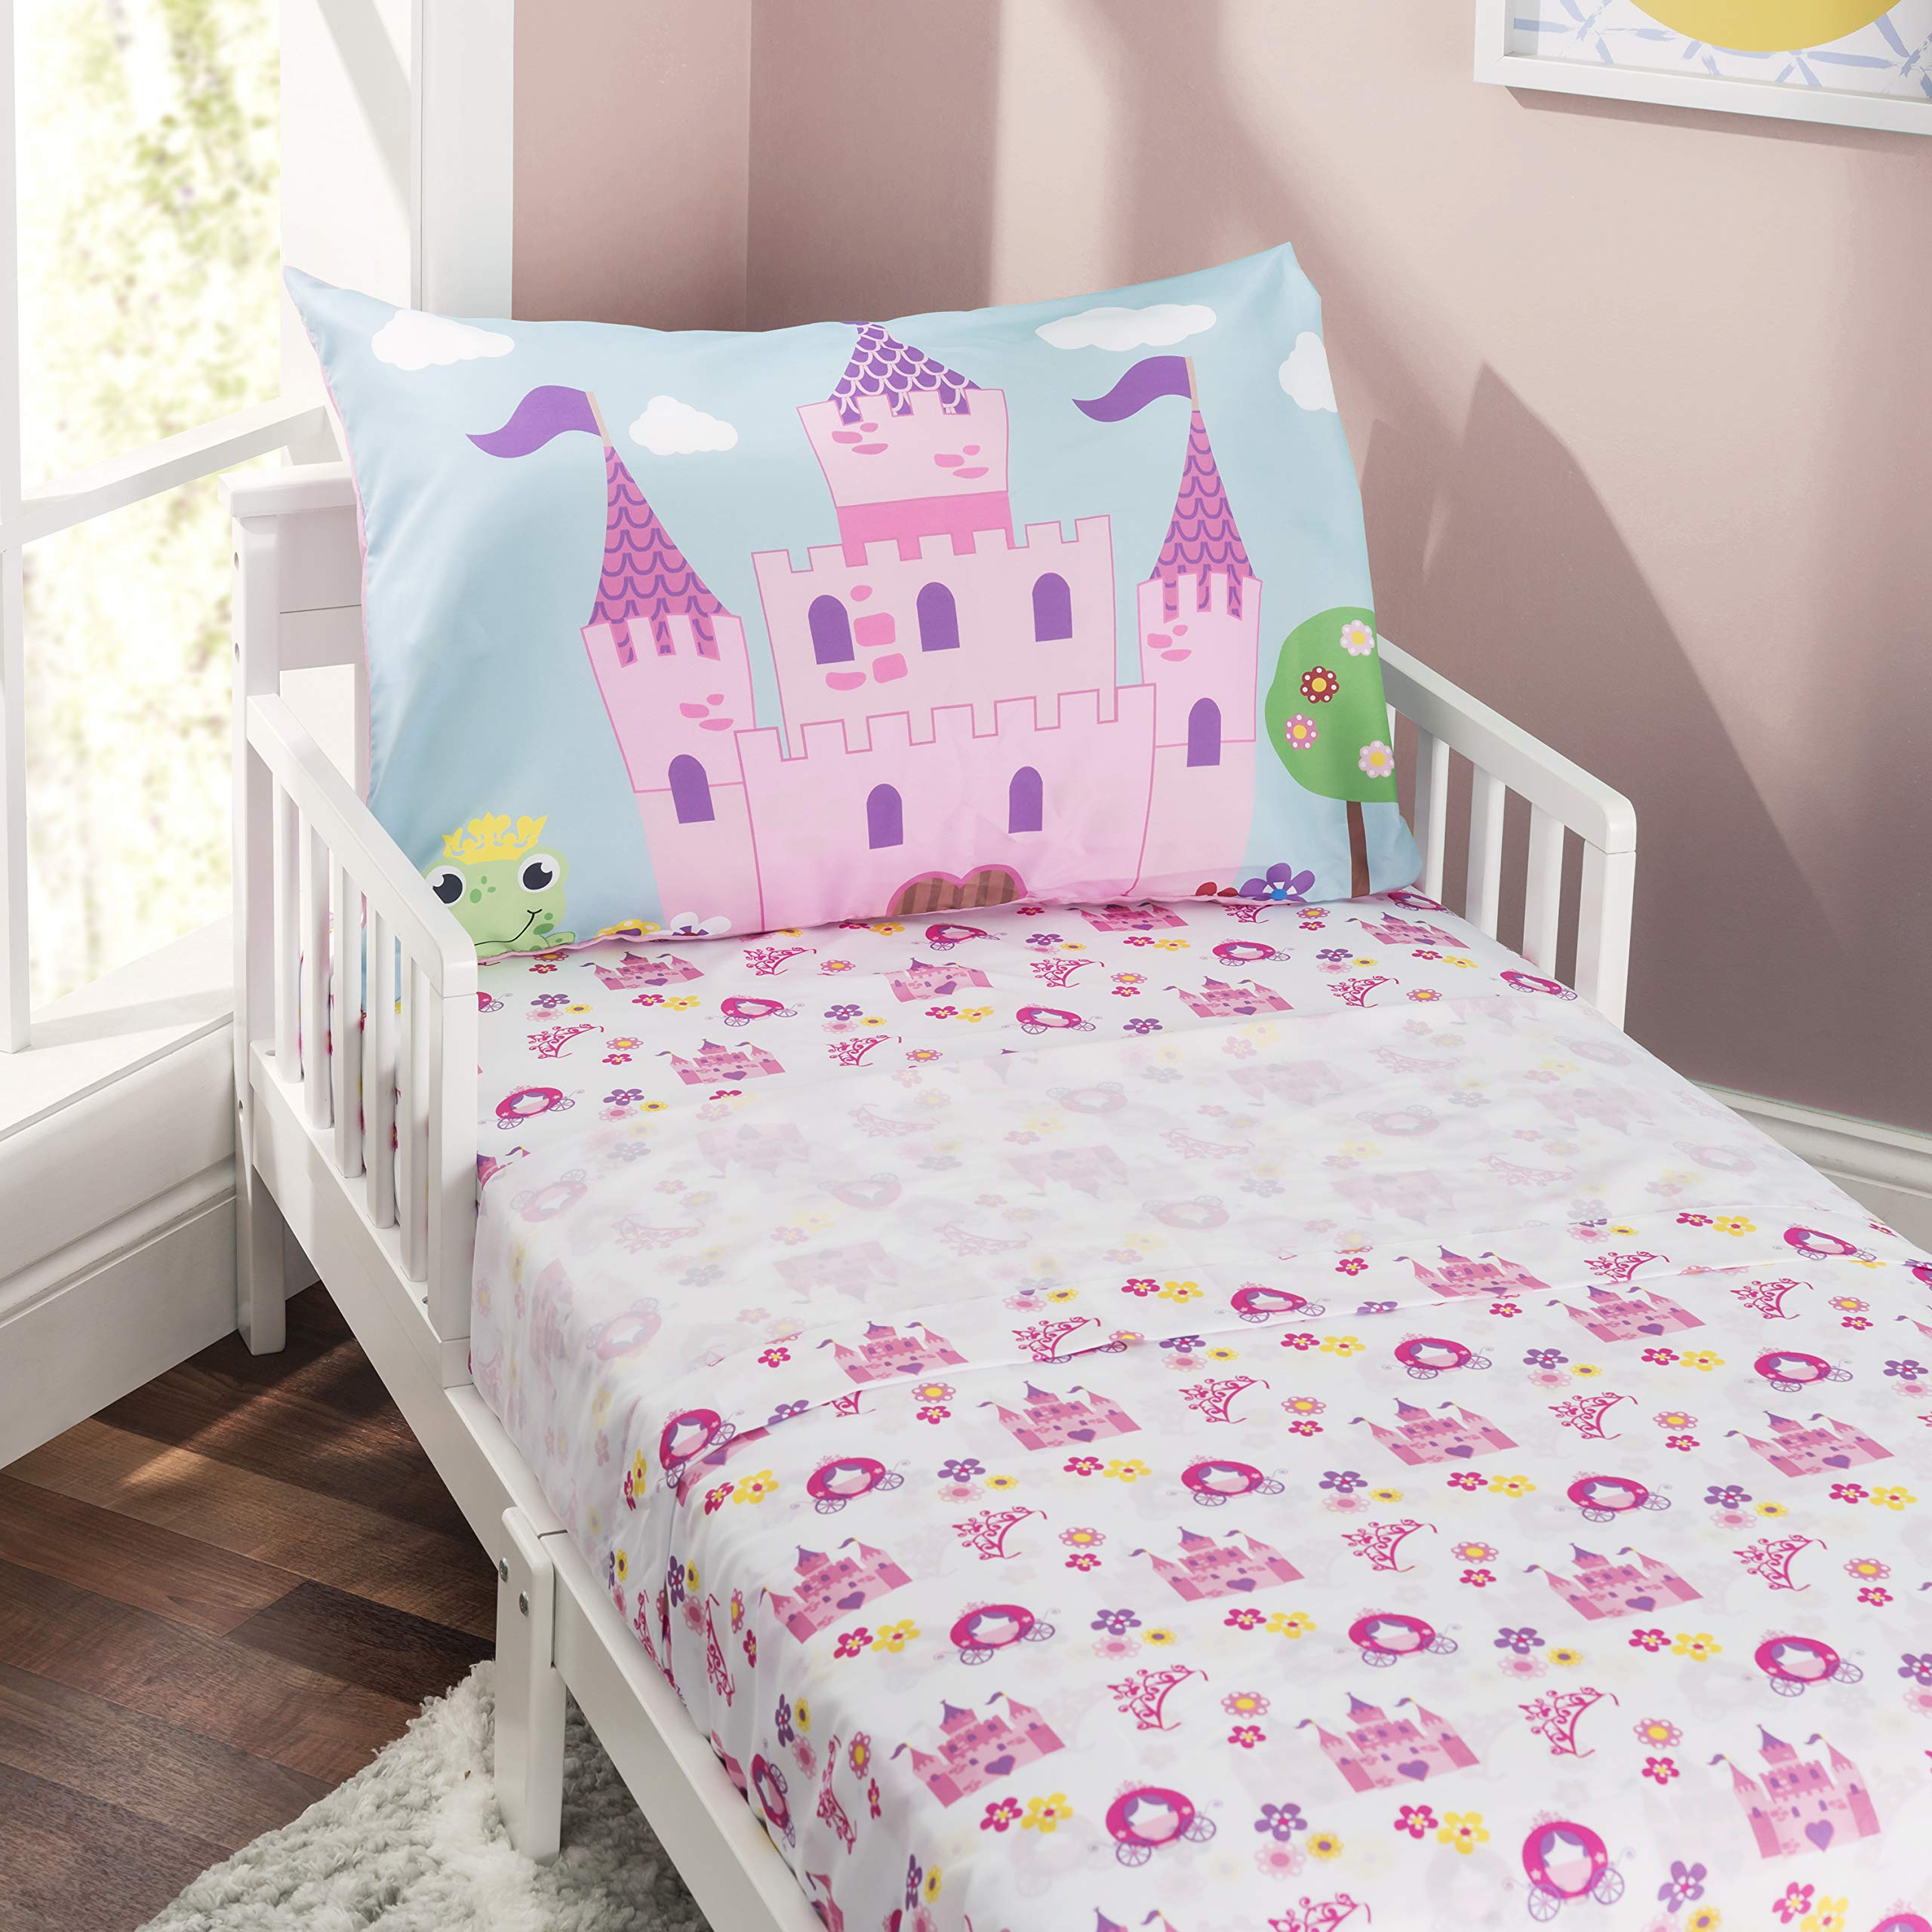 Everyday Kids 3-Piece Toddler Fitted Sheet, Flat Sheet and Pillowcase Set - Princess Storyland - Soft Microfiber, Breathable and Hypoallergenic Toddler Sheet Set by EVERYDAY KIDS